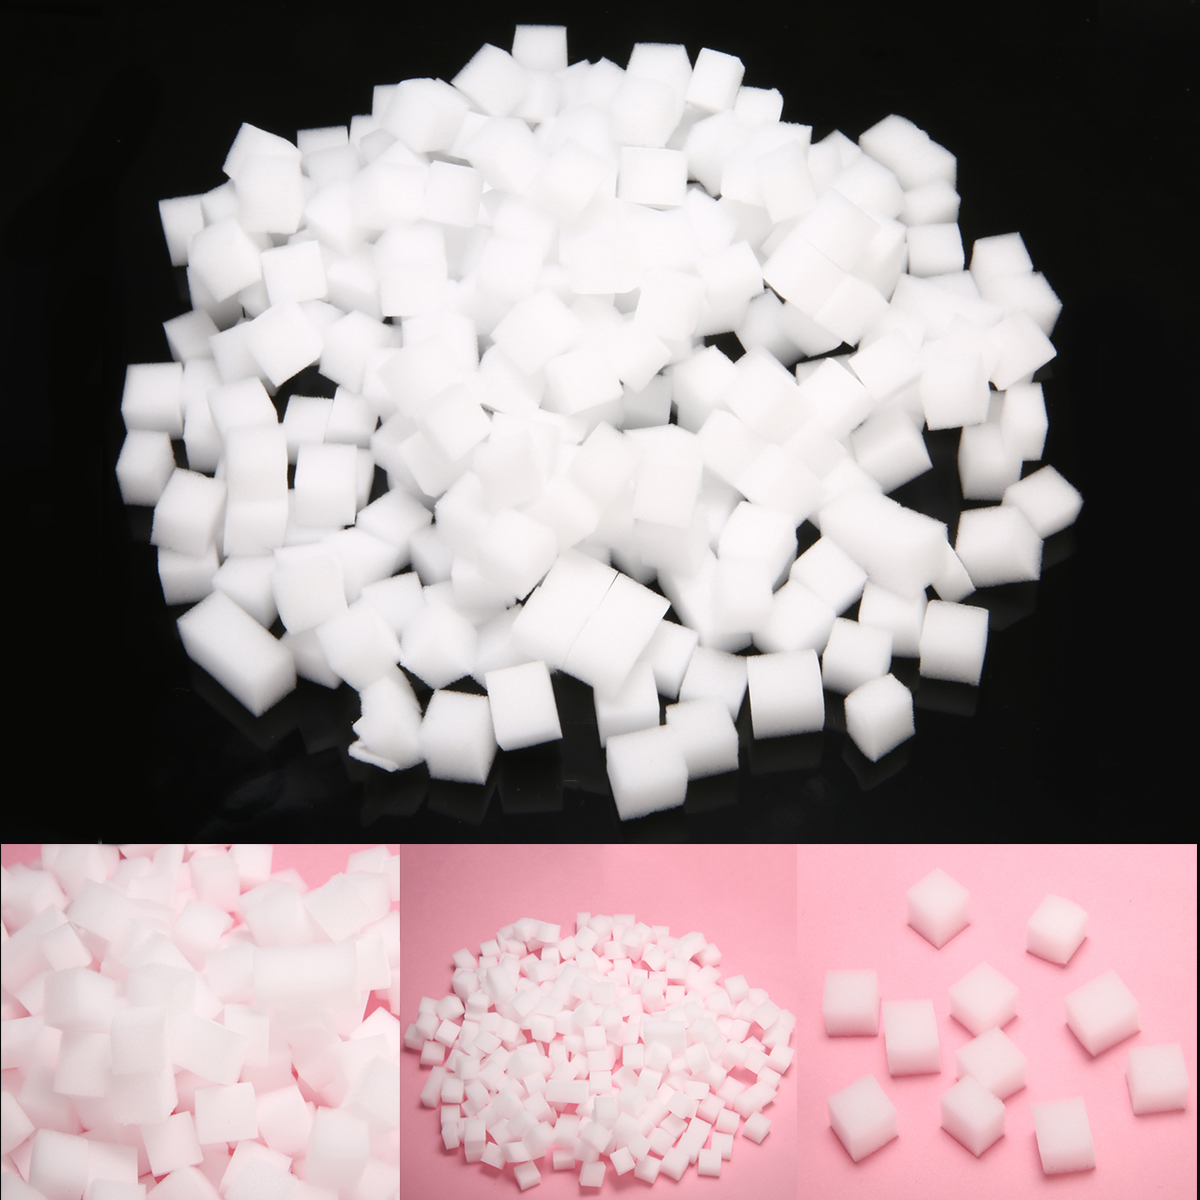 300pcs/bag Simulation Jelly Cubes For DIY Slime / Jelly Cube Clear Slime Toy Girl Crafts DIY Toy Material 10*10mm